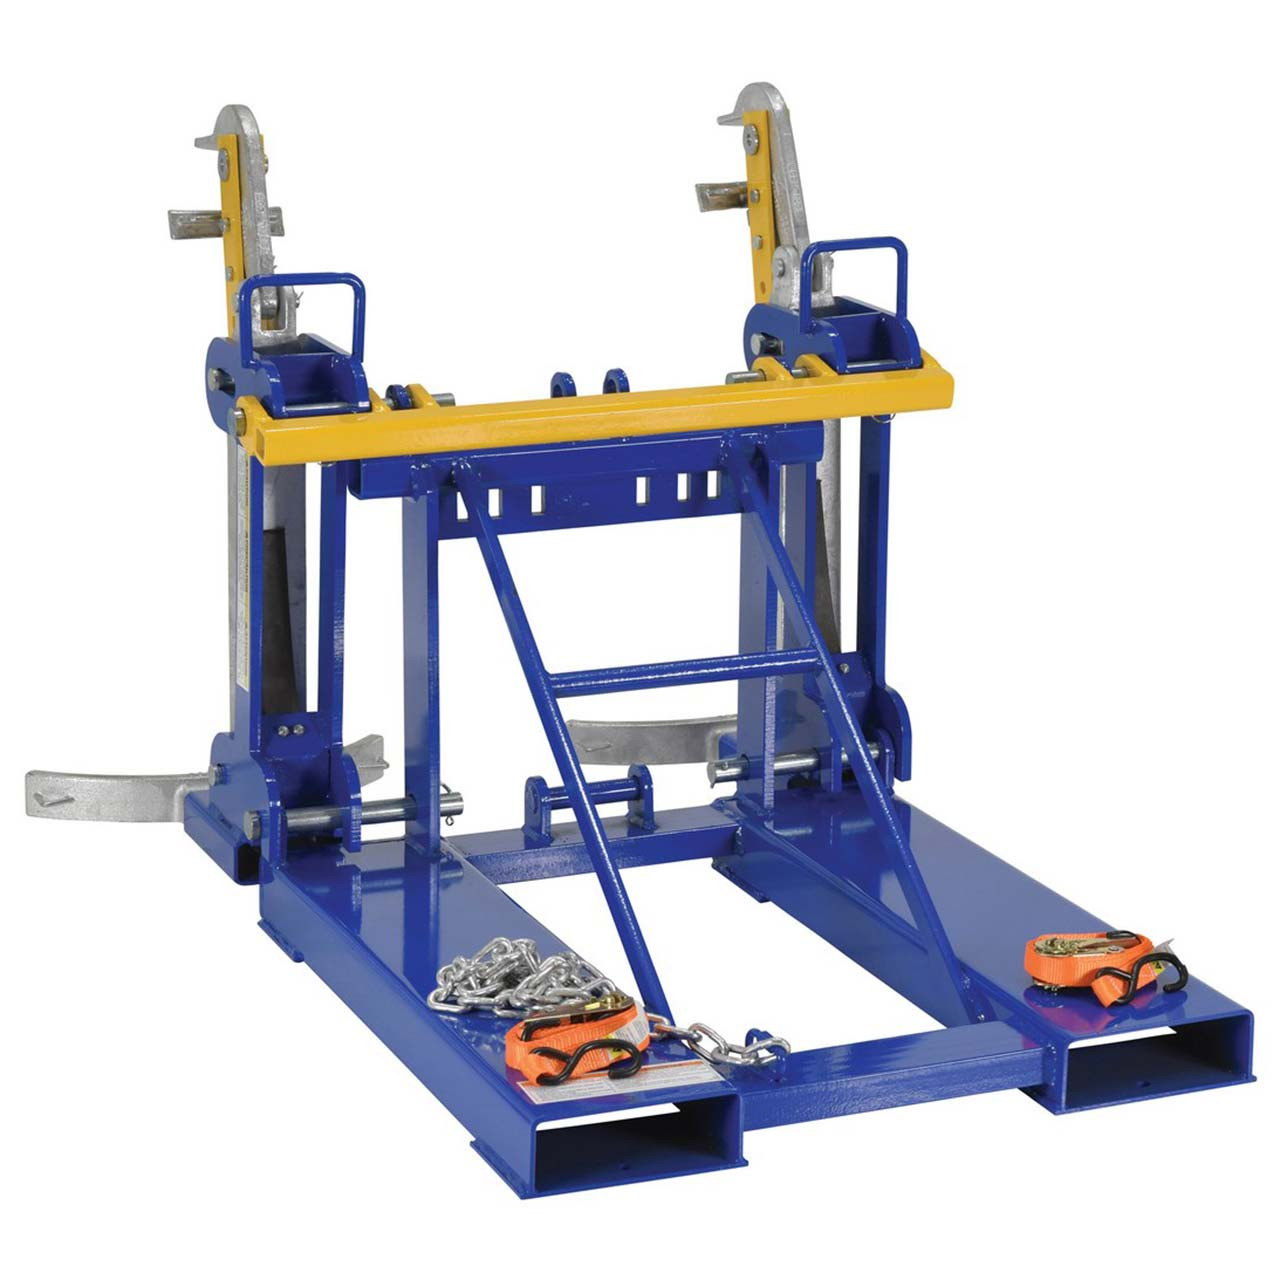 Automatic Drum Lifter Rear View